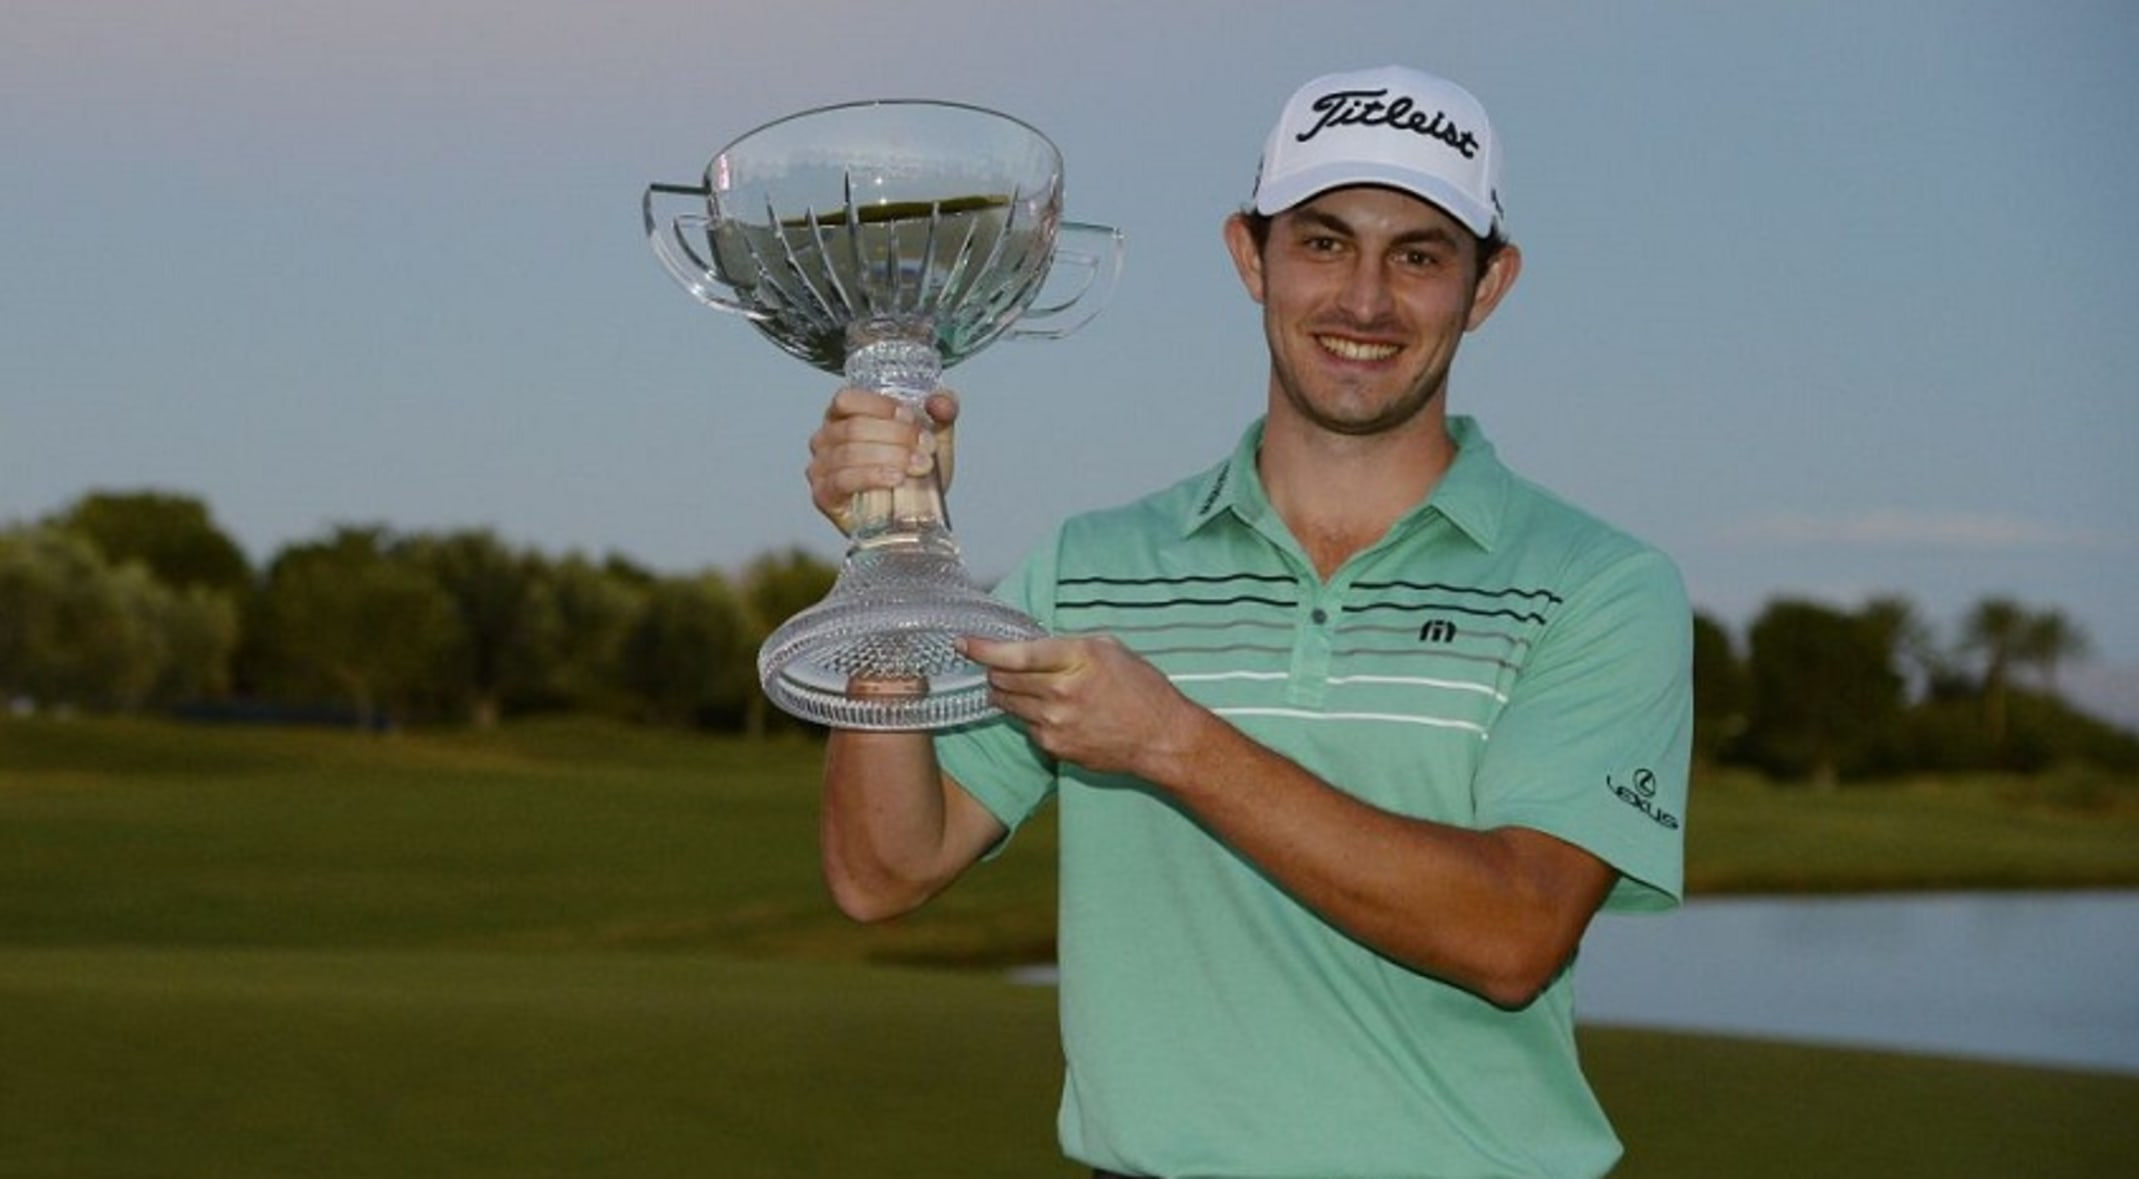 Patrick Cantlay Is Triumphant At Shriners In Second Playoff Hole